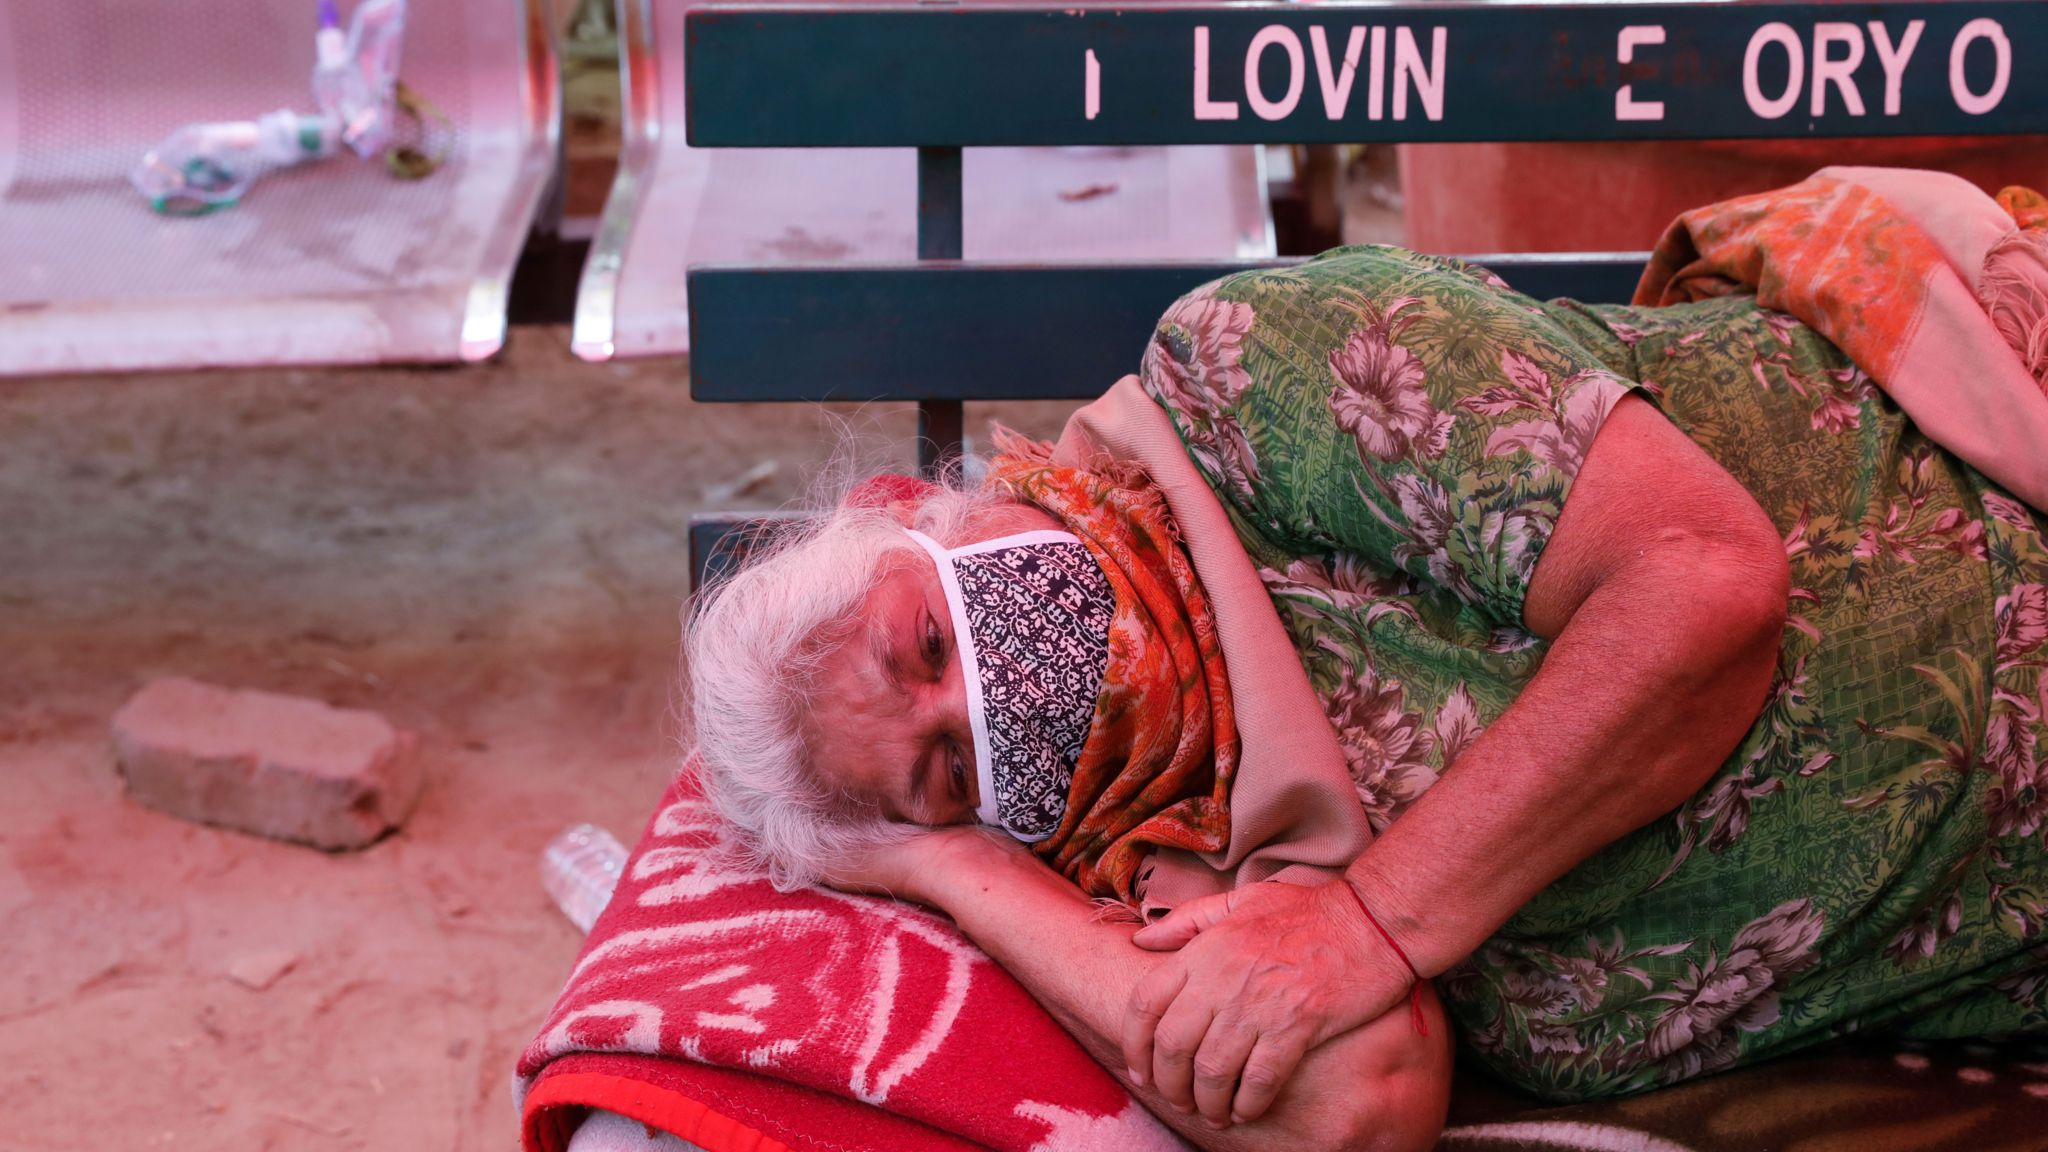 Image of a woman seeking treatment for Covid in India